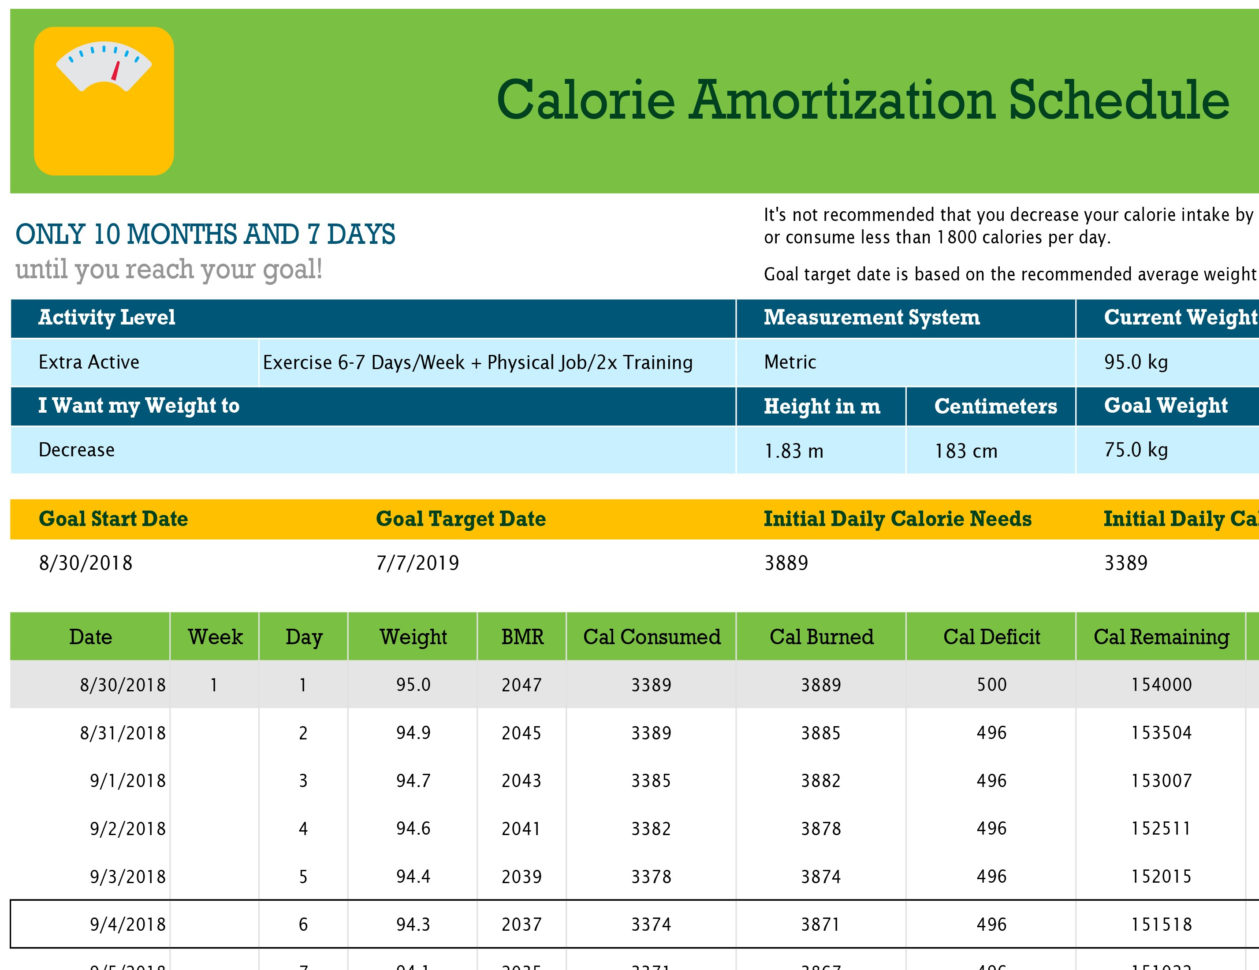 Daily Calories & Food Nutrition Excel Spreadsheet Calculator Inside Calorie Amortization Schedule